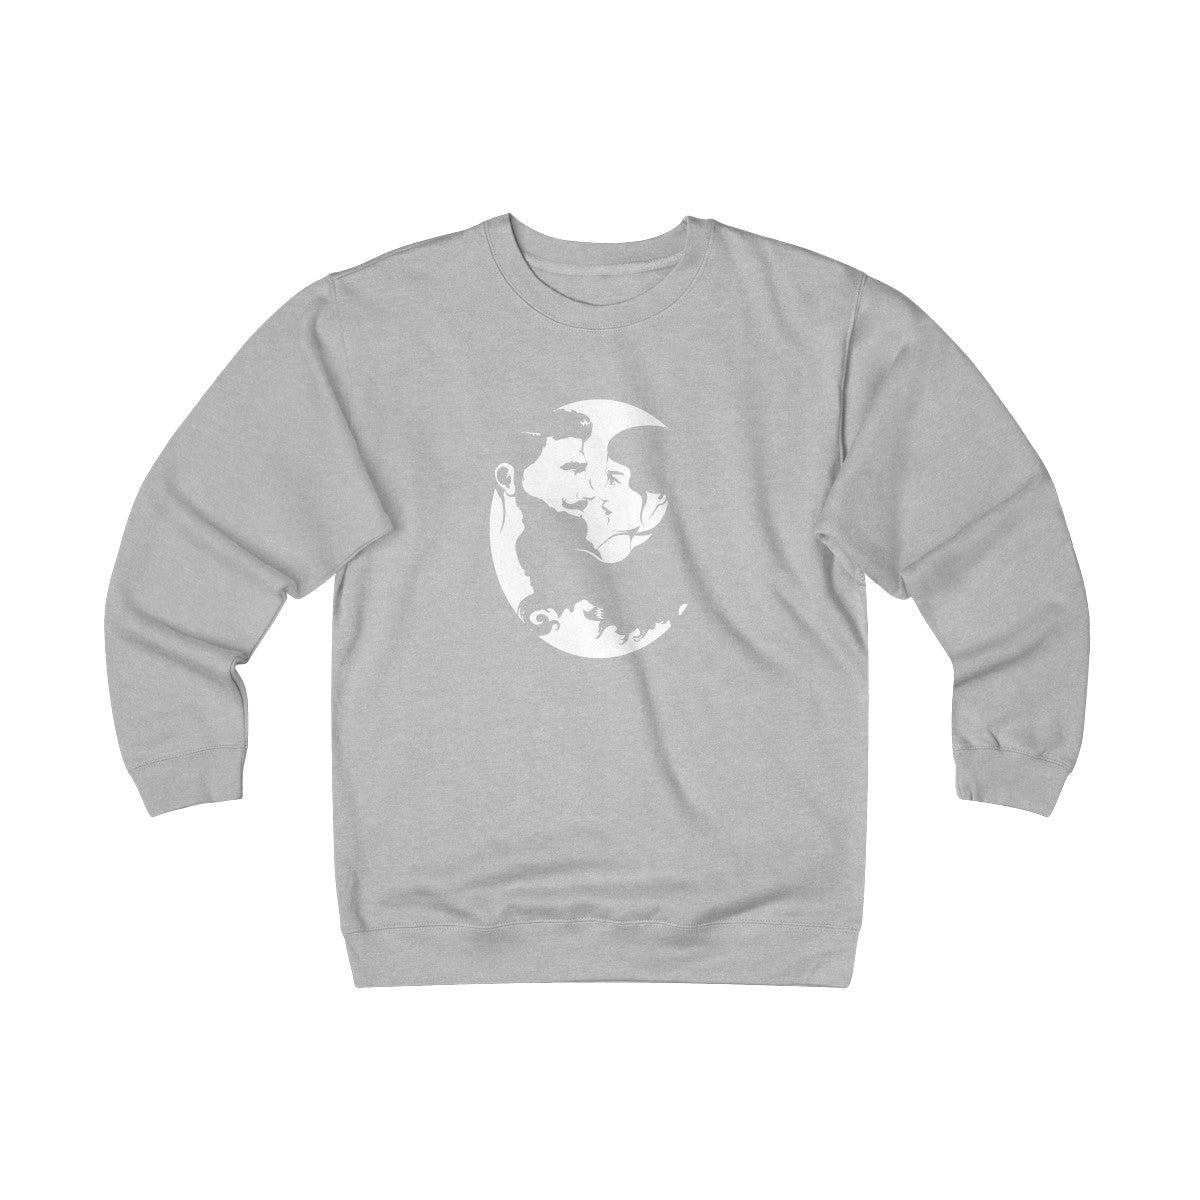 Unisex Heavyweight Fleece Crew - White Logo - Beard and Lady